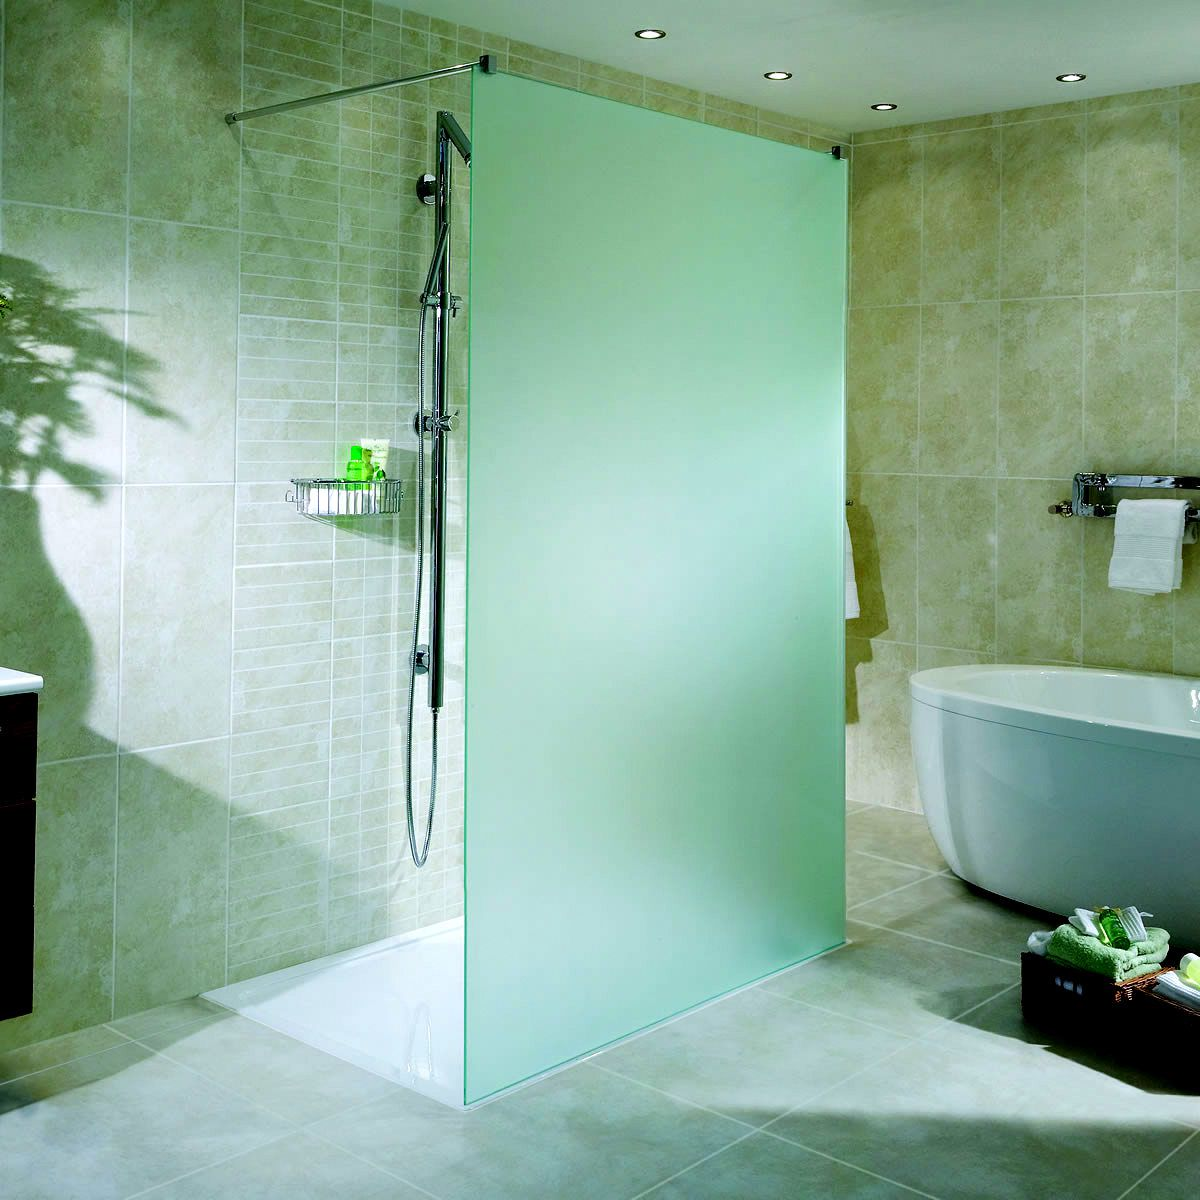 Aqata Spectra Twin Entry Etched Shower Enclosure Sp440